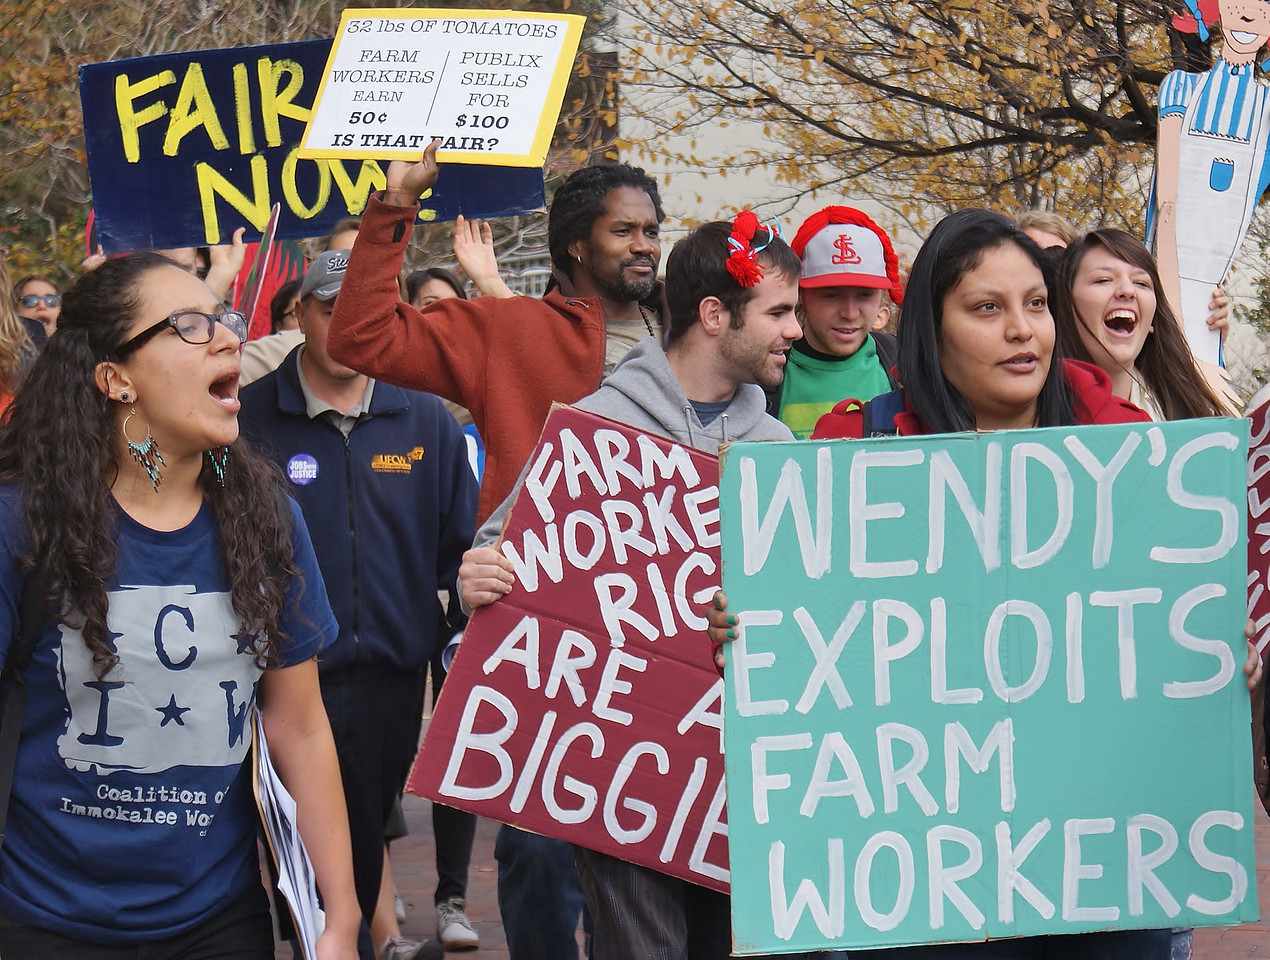 Regis University students, union members, and members of Jobs with Justice, rallied then marched to a local Wendy's to demand the fast food chain join the Fair Food Program to improve the conditions of farmworkers.